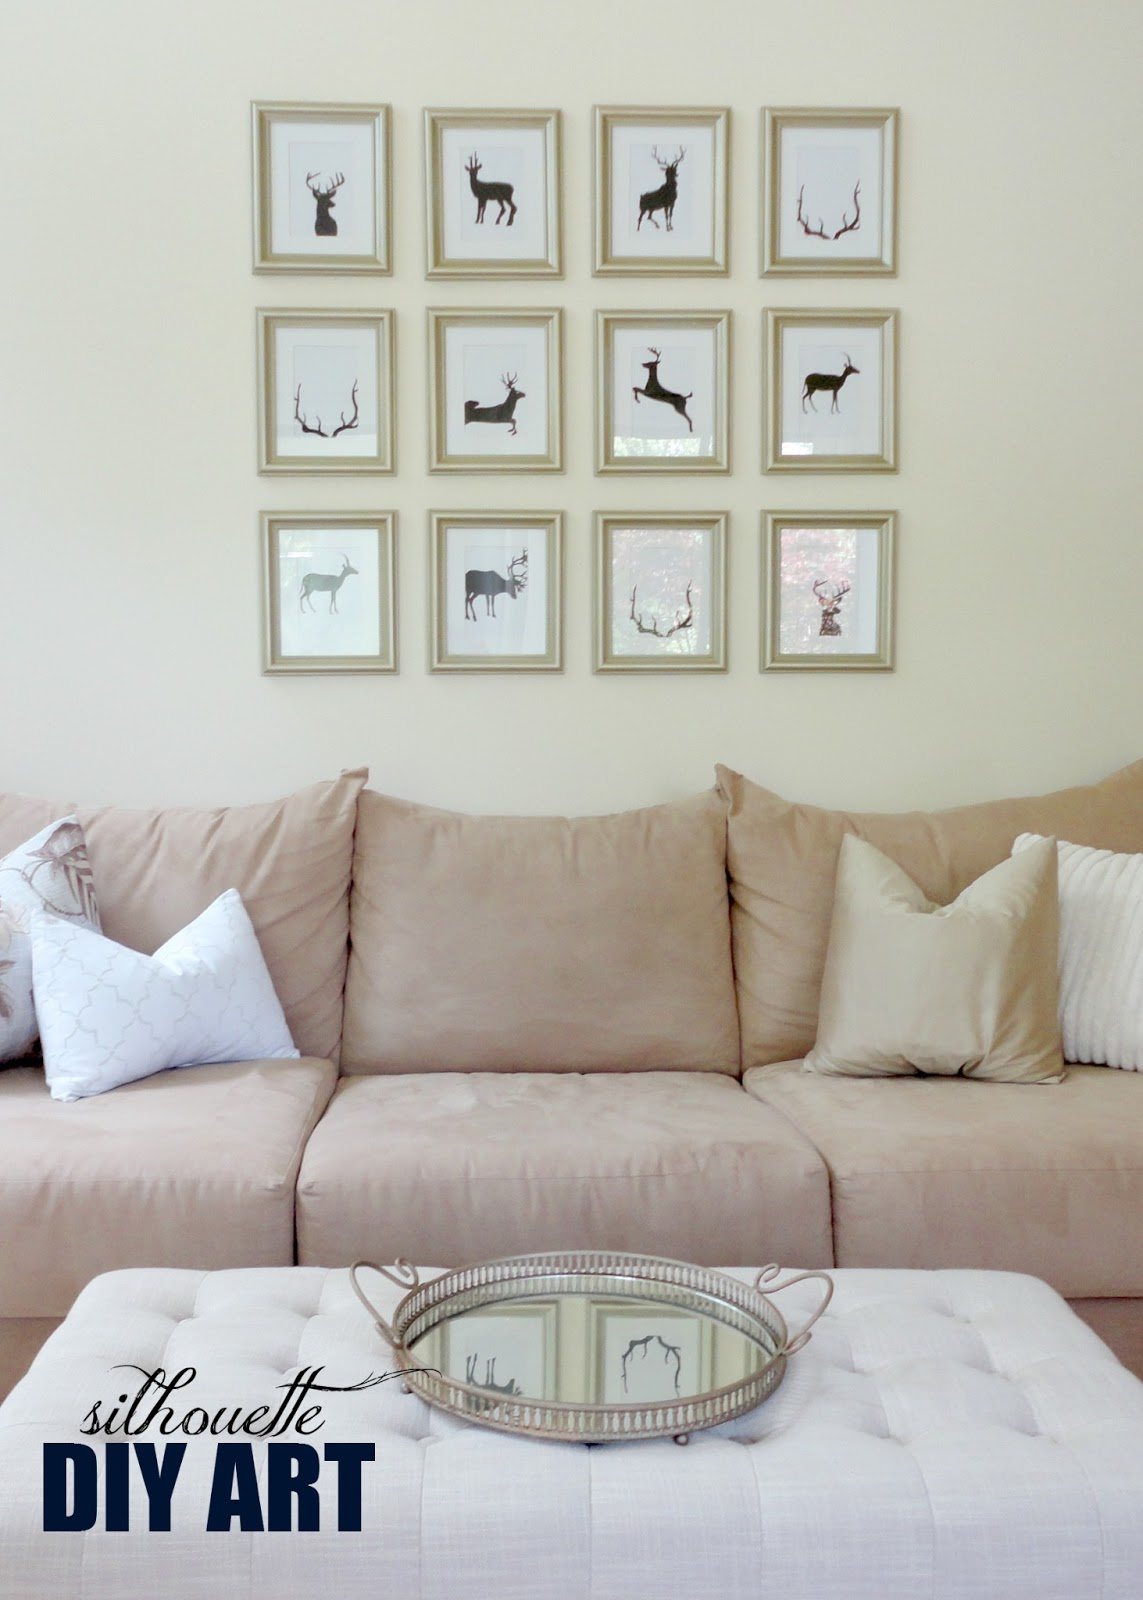 LiveLoveDIY 10 DIY Art Ideas Easy Ways To Decorate Your Walls